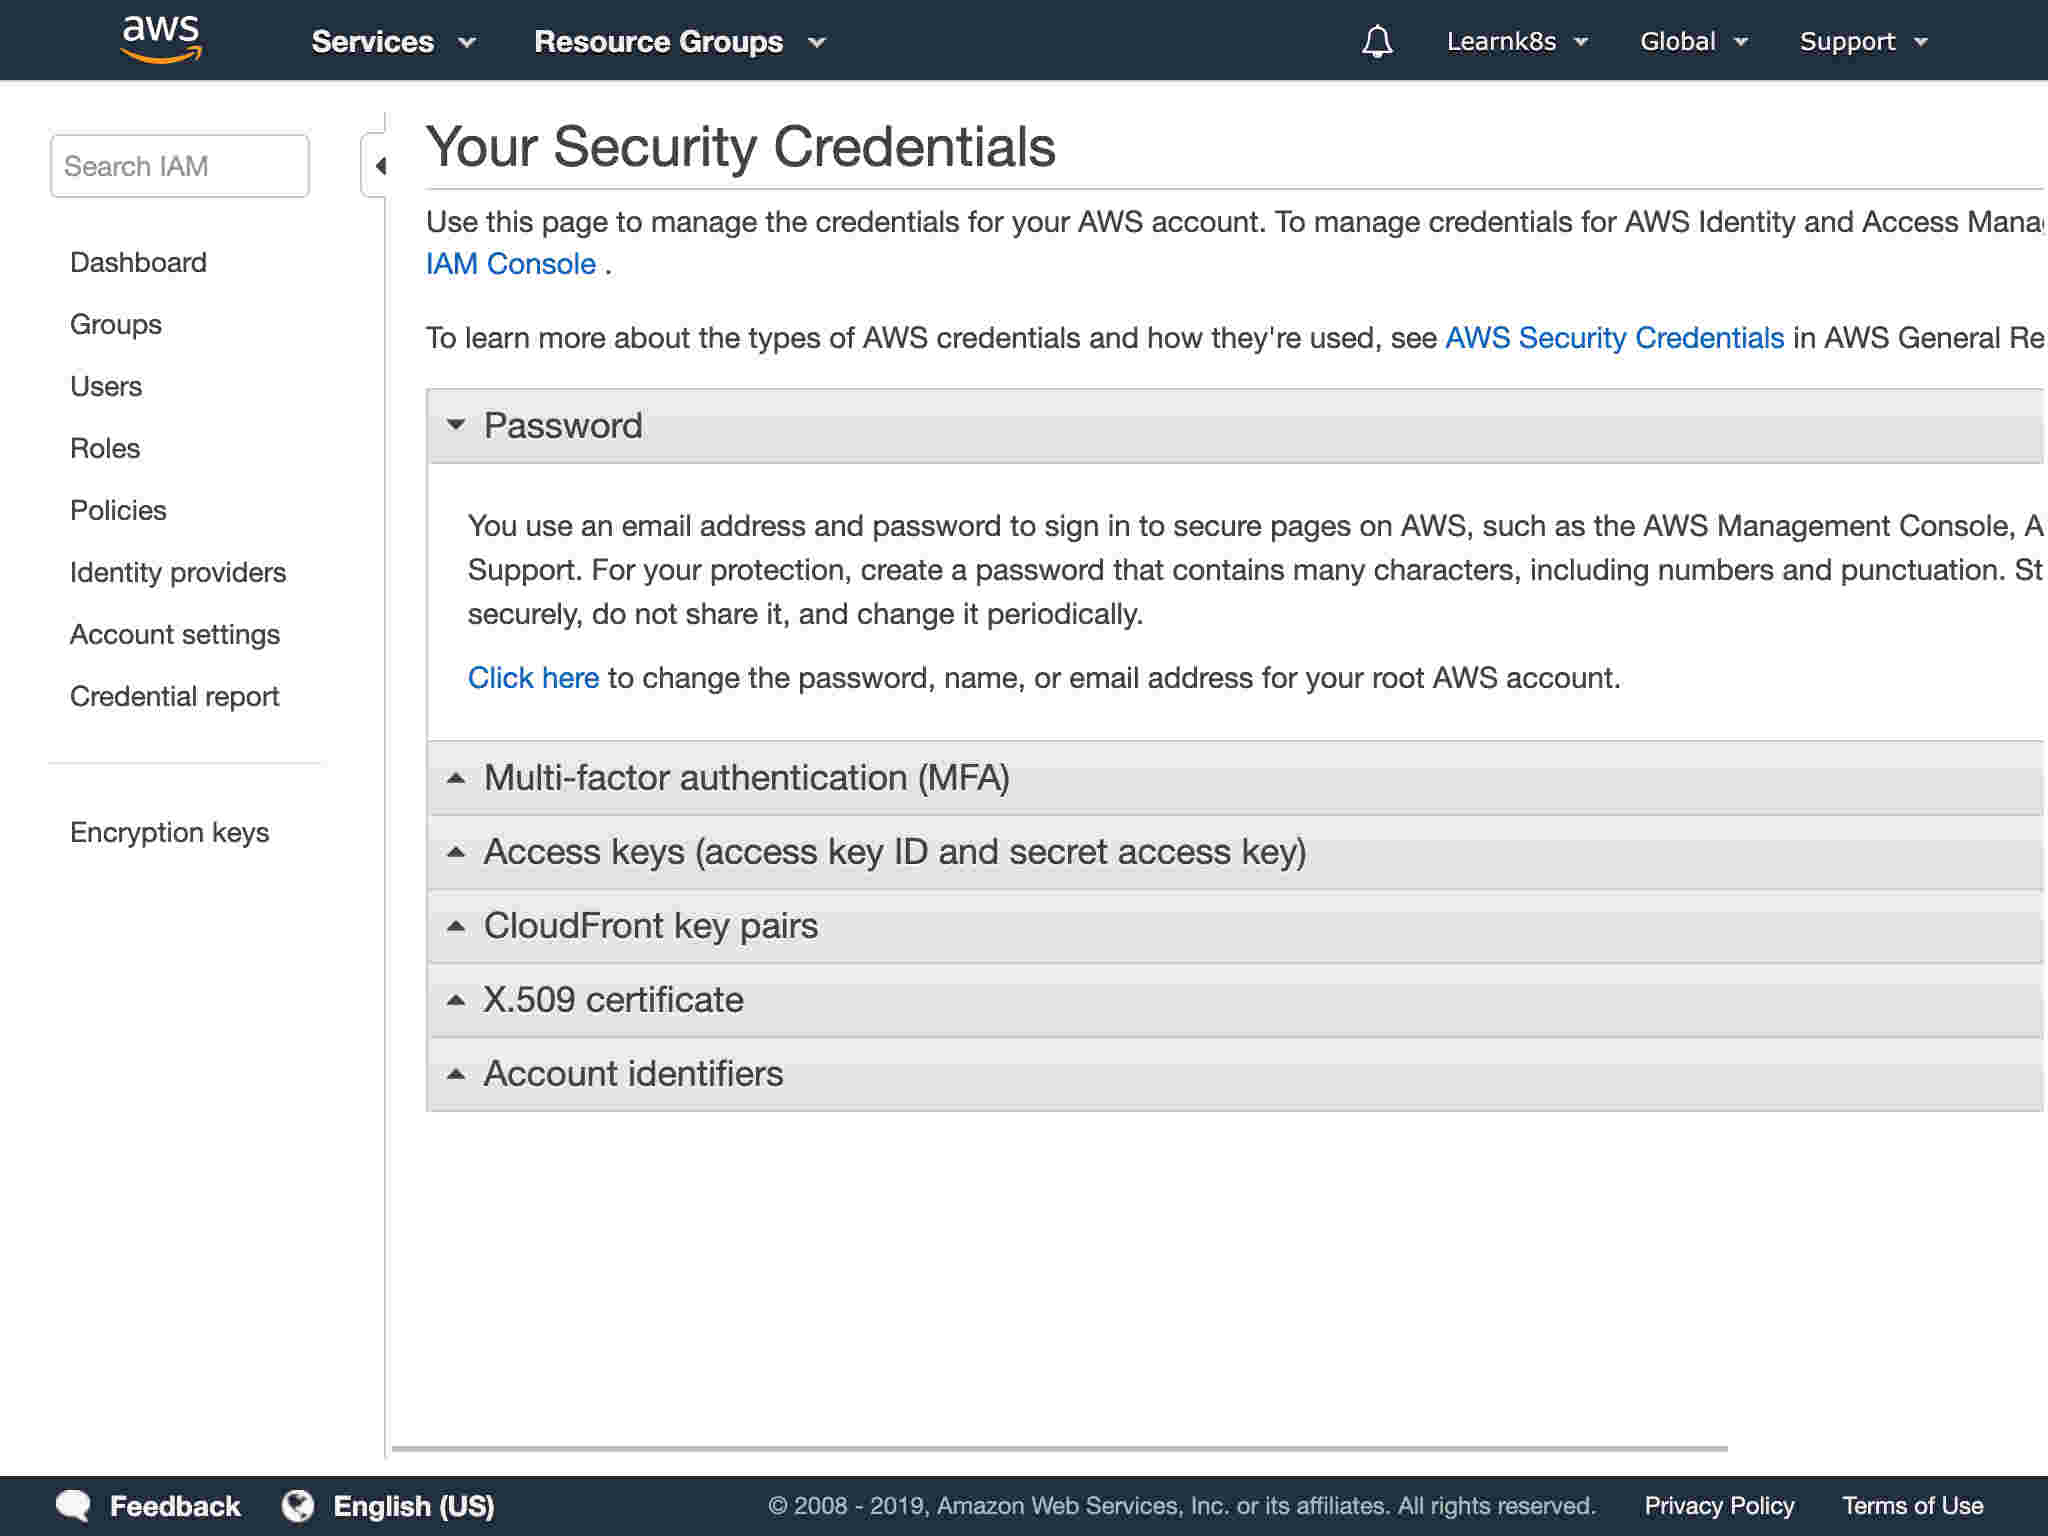 You should land on Your Security Credentials page.